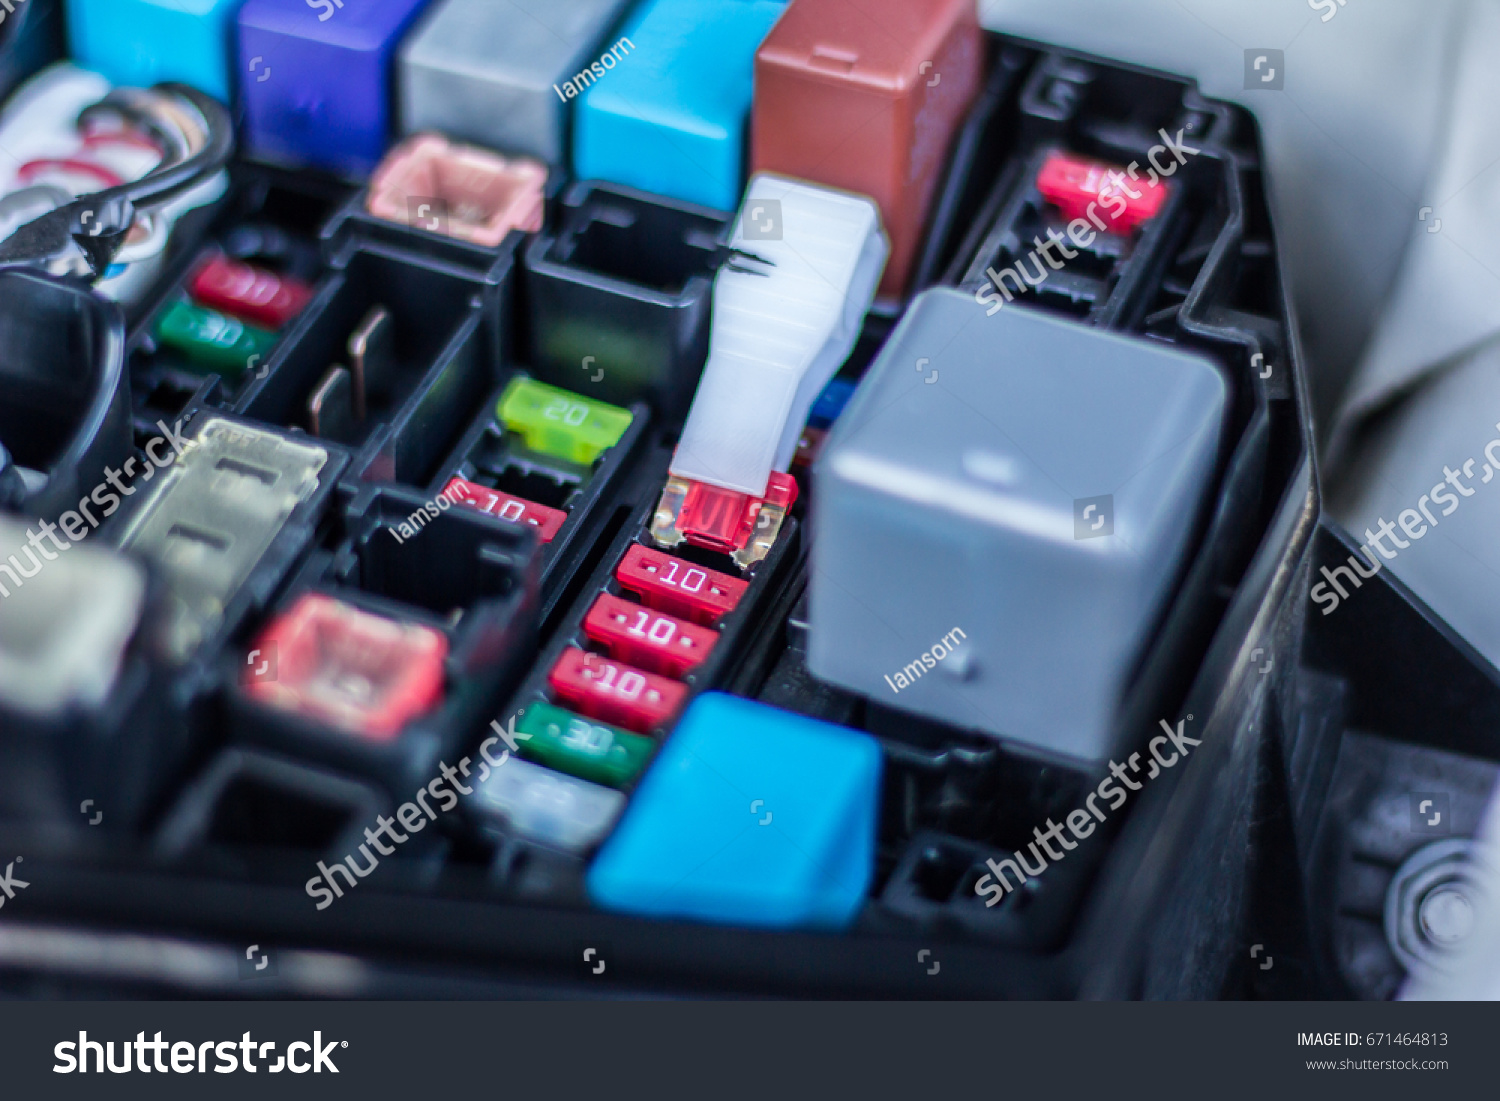 hight resolution of remove fuse fuse box car stock photo edit now 671464813remove the fuse in fuse